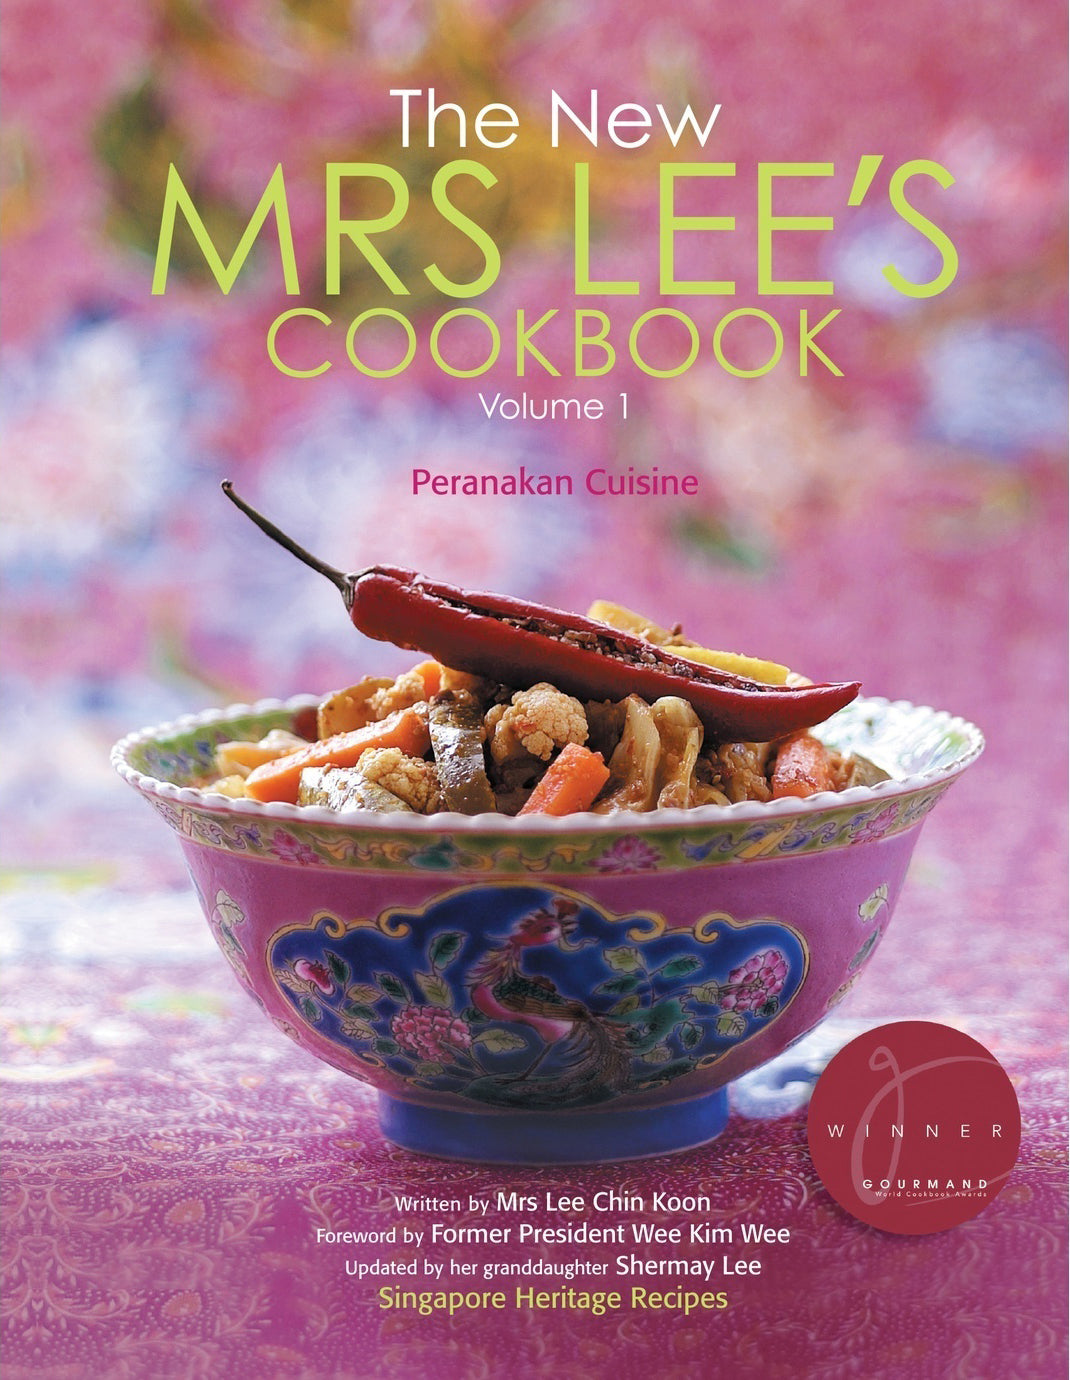 The New Mrs Lee's Cookbook Volume 1 (Nyonya Cuisine)